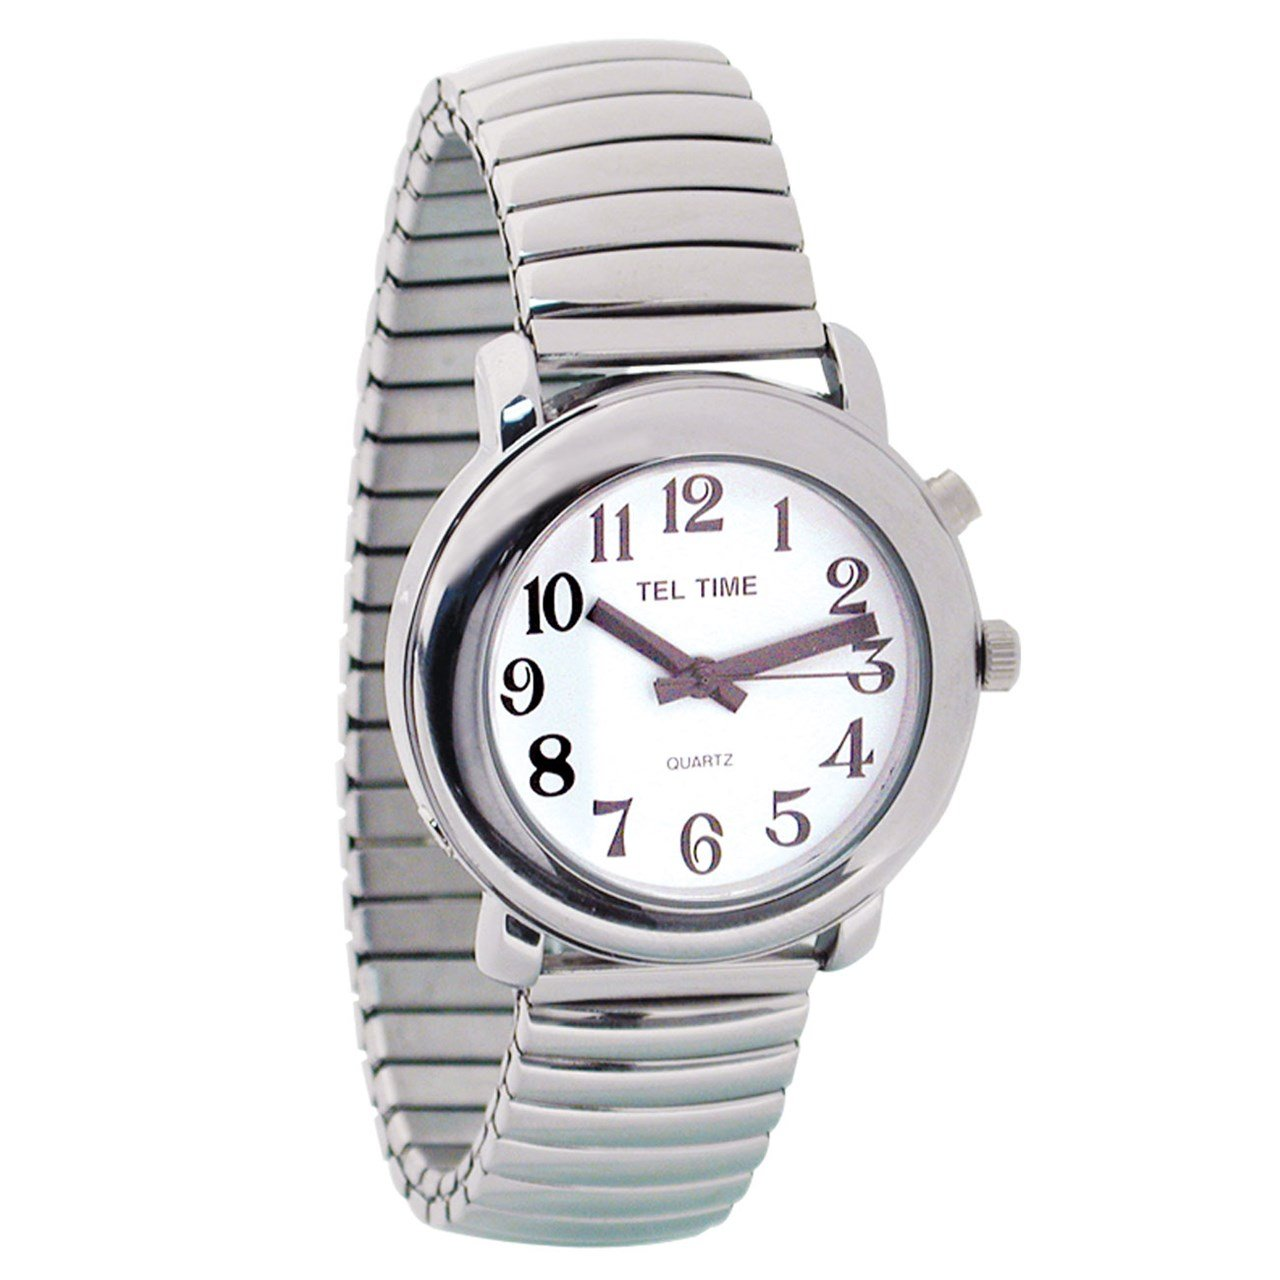 Unisex Tel-Time Talking Watch - One Button - Chrome by MaxiAids